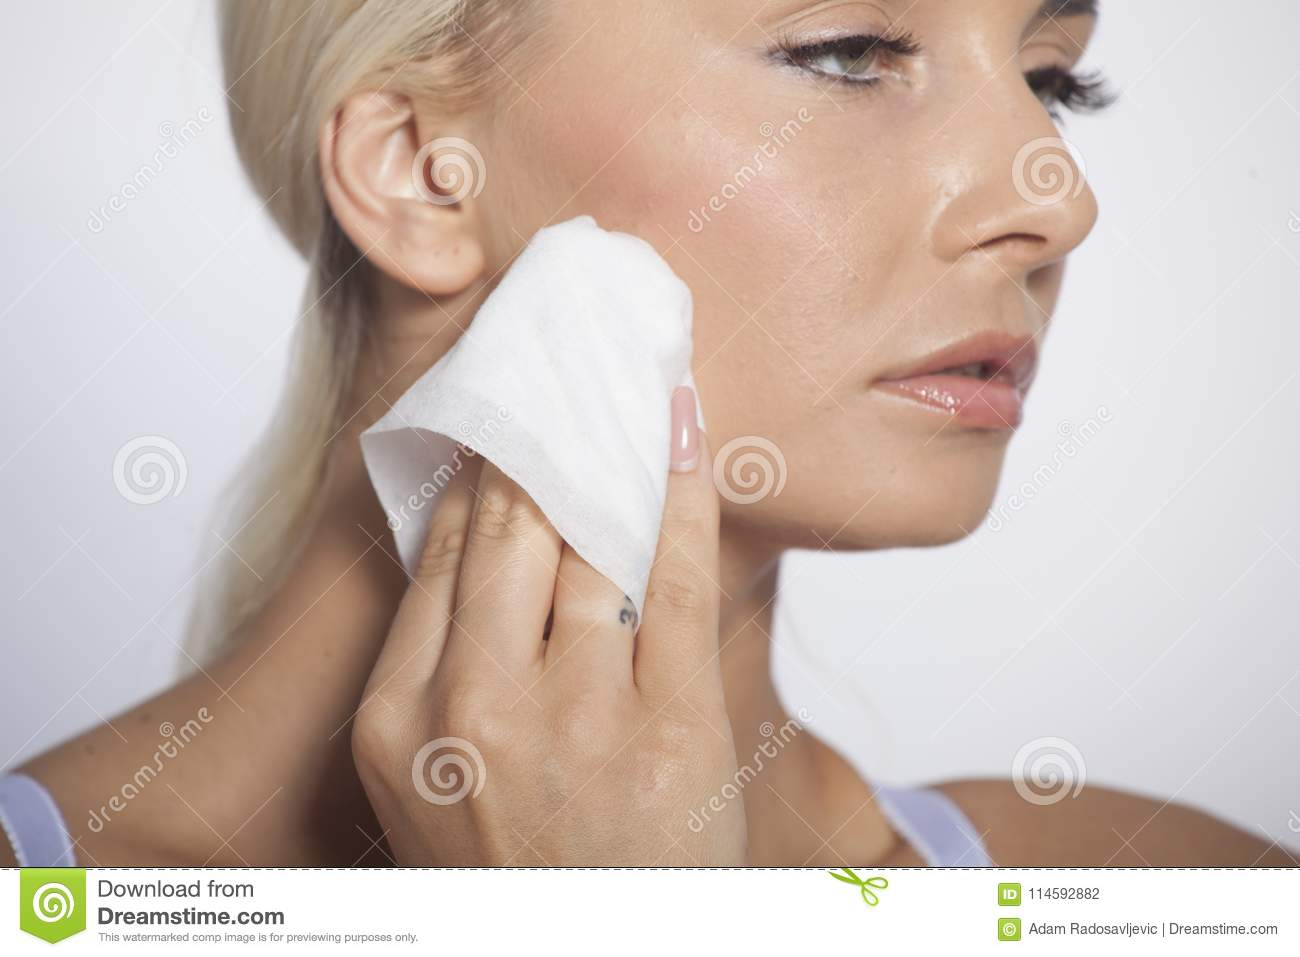 Woman Clean Face With Wet Wipes Stock Photo - Image of hygienic ... 0917824e8